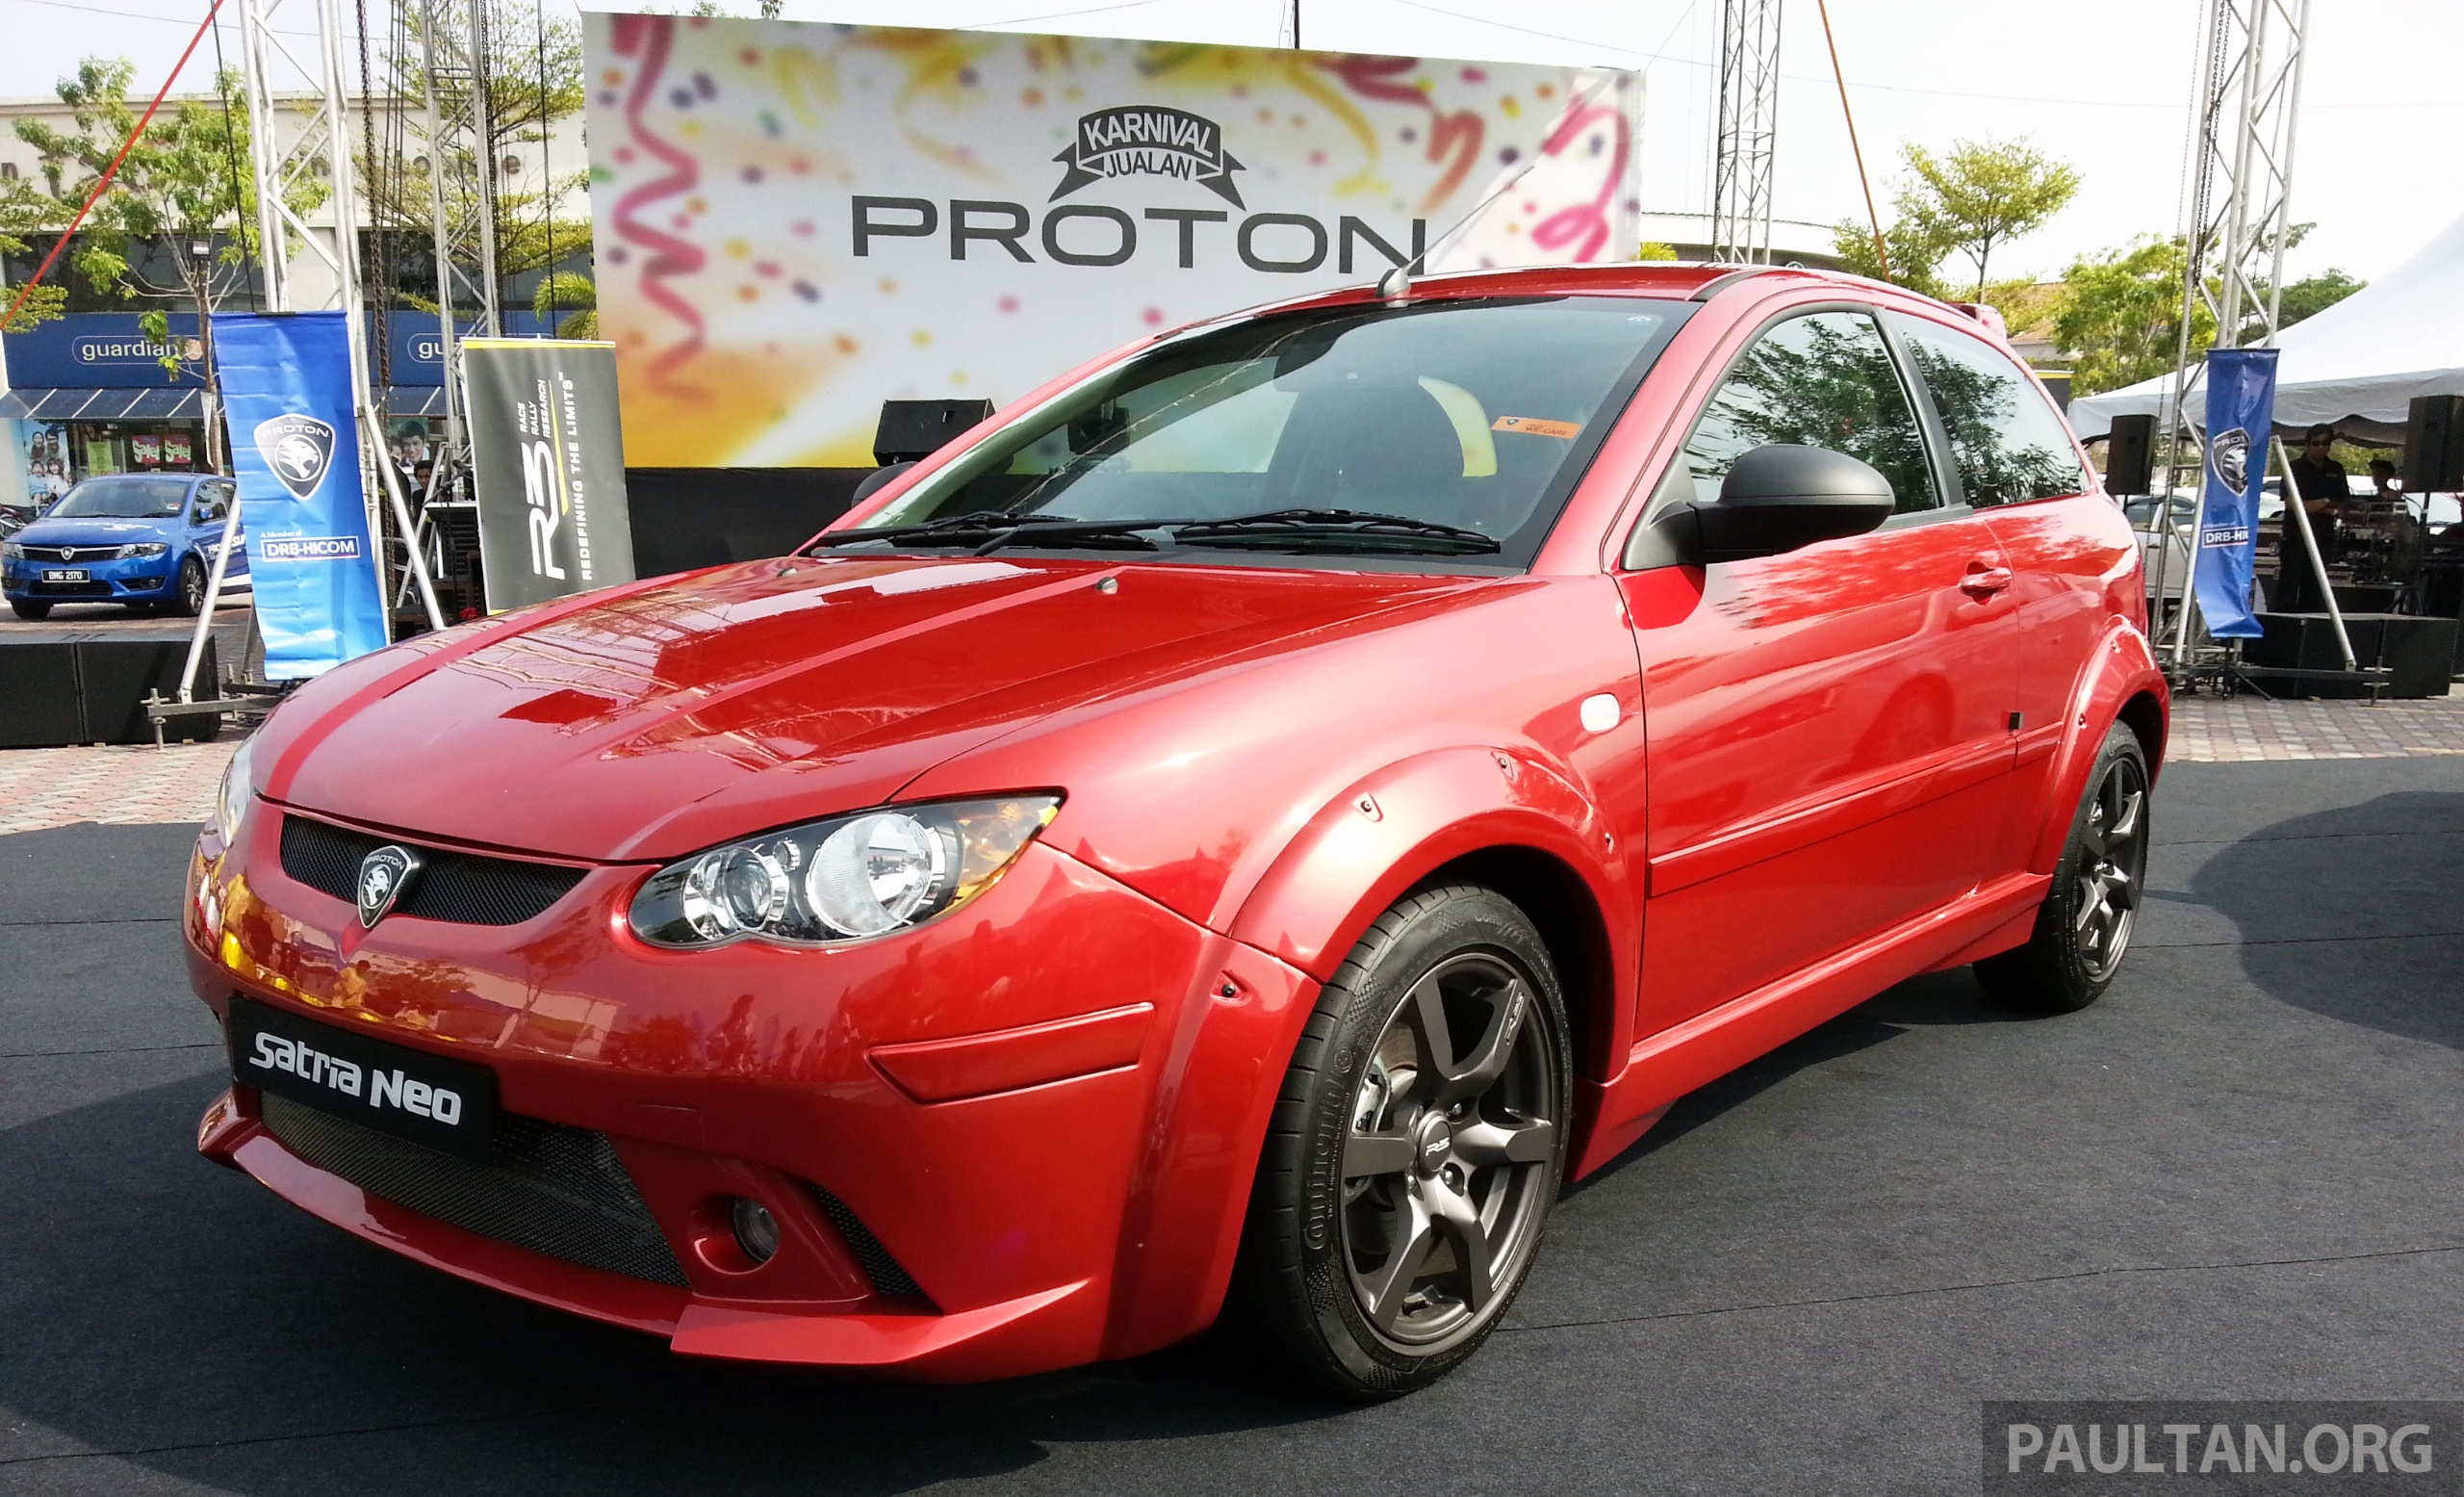 Cps Car Loan >> Proton Satria Neo - production to end this year